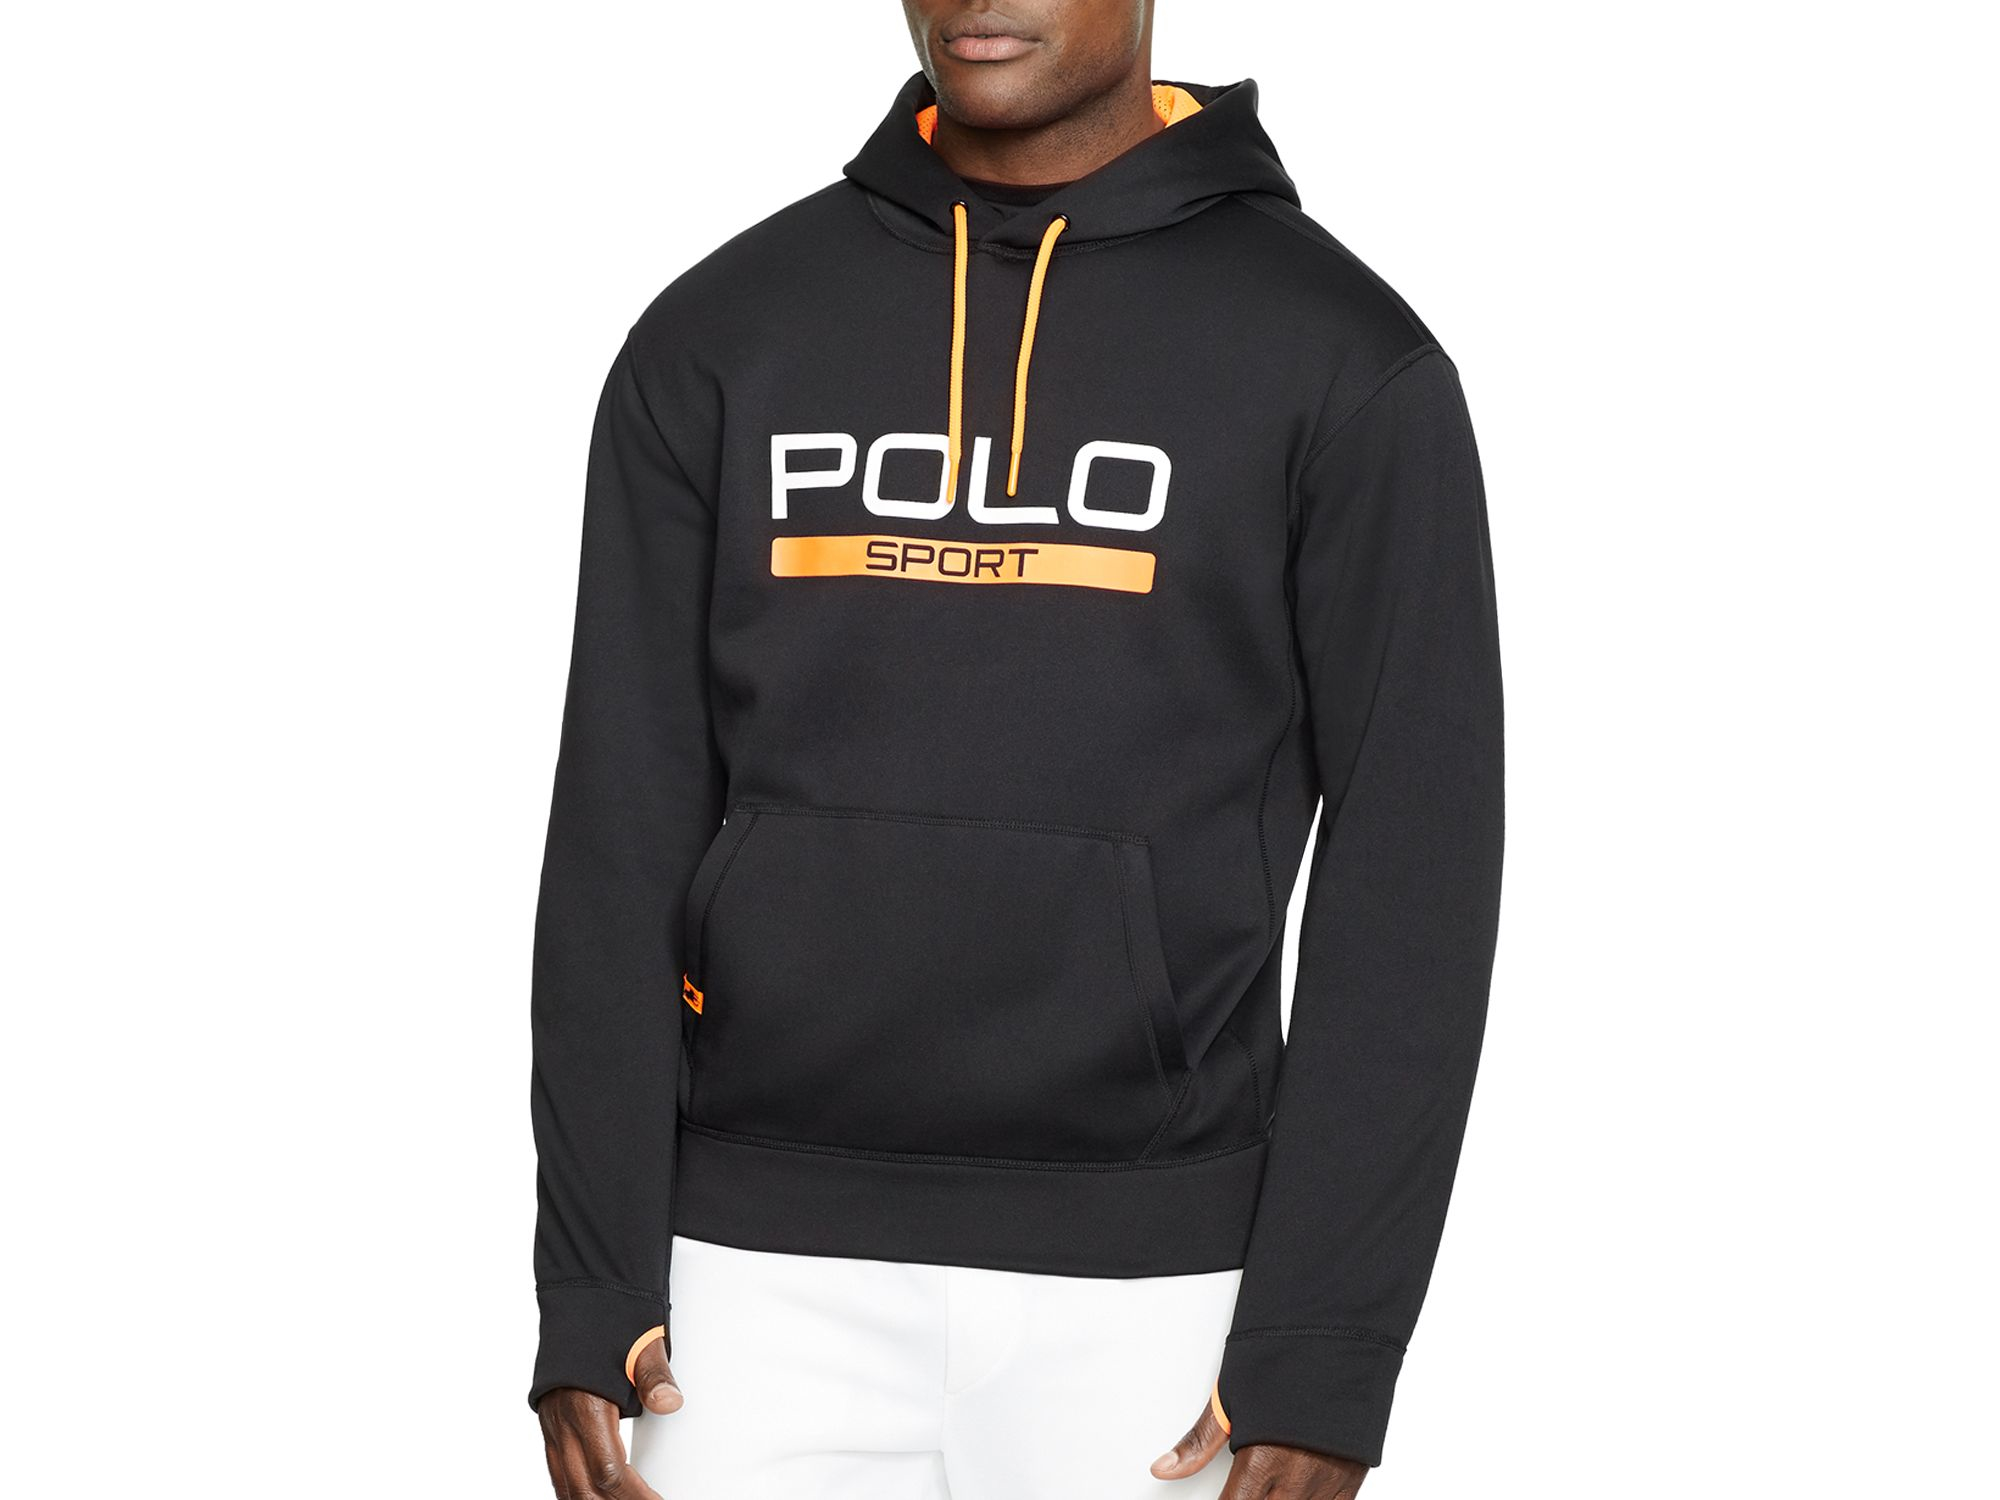 polo ralph lauren polo sport tech fleece hoodie in black. Black Bedroom Furniture Sets. Home Design Ideas